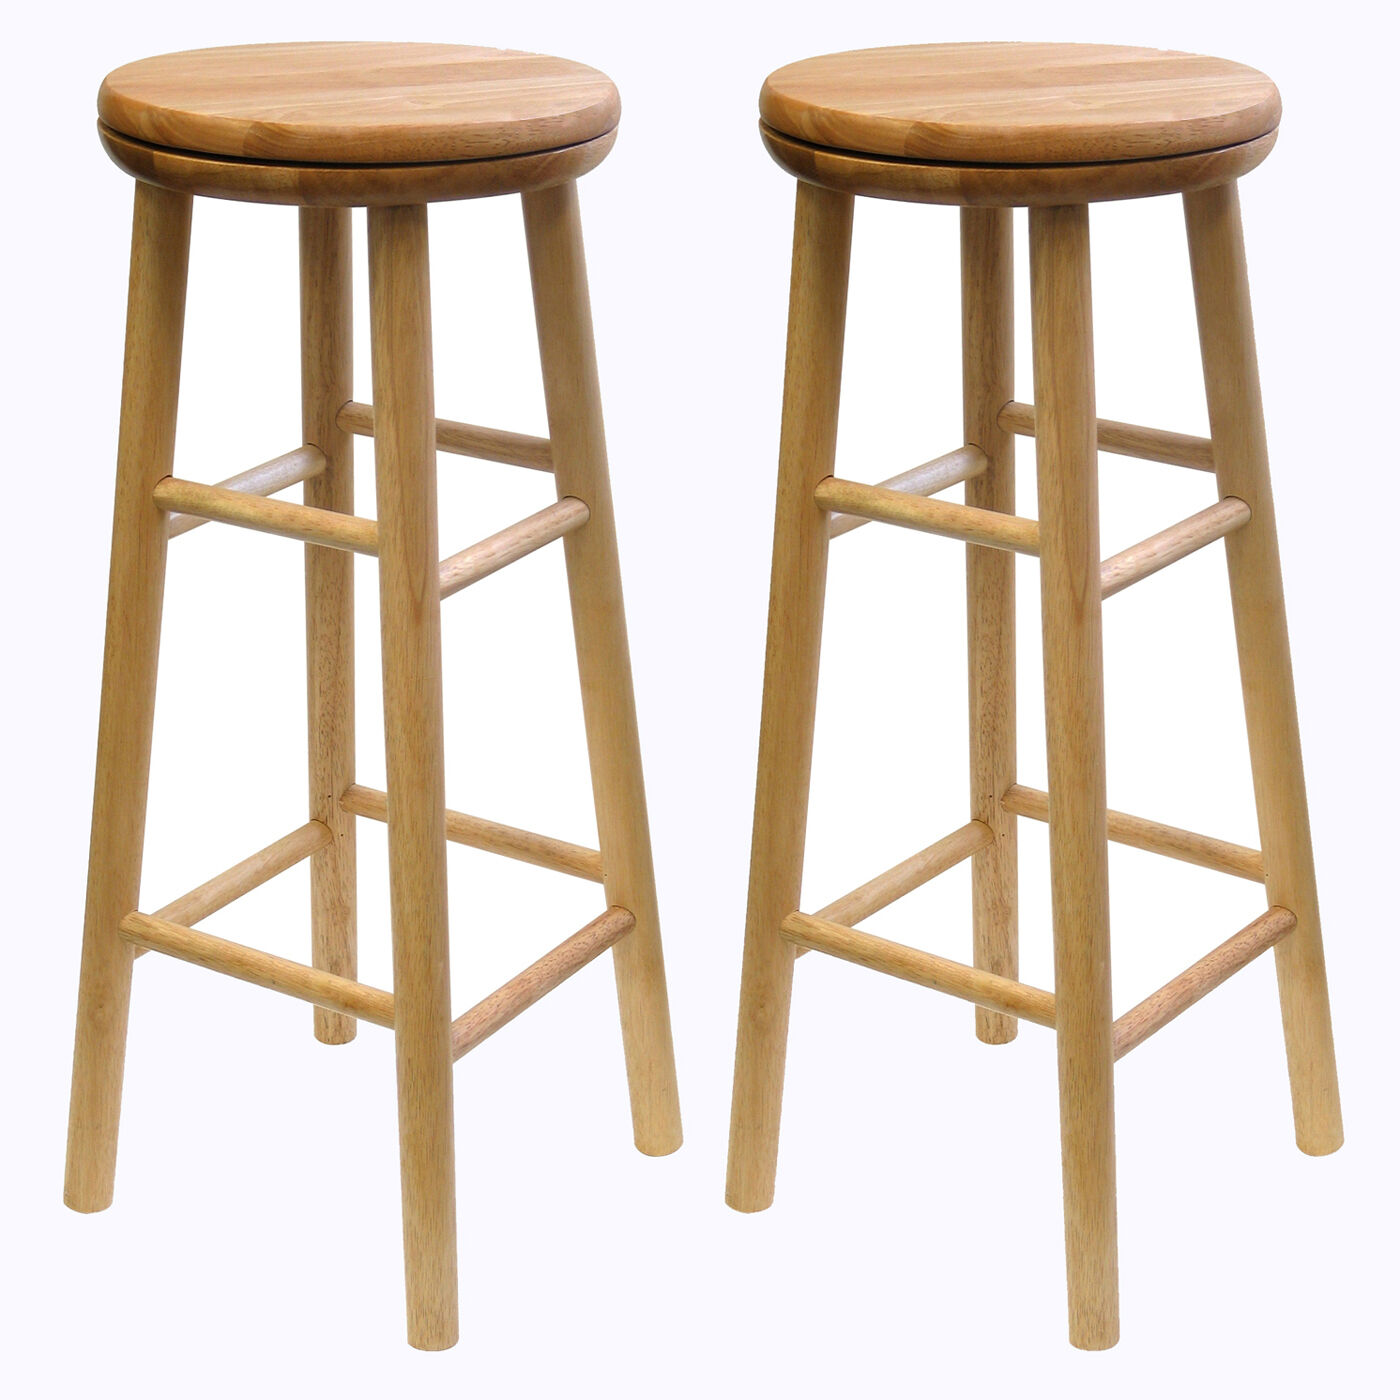 Very Impressive portraiture of  30 High Swivel Wooden Stools in Natural Color by Winsome Wood eBay with #976534 color and 1400x1400 pixels